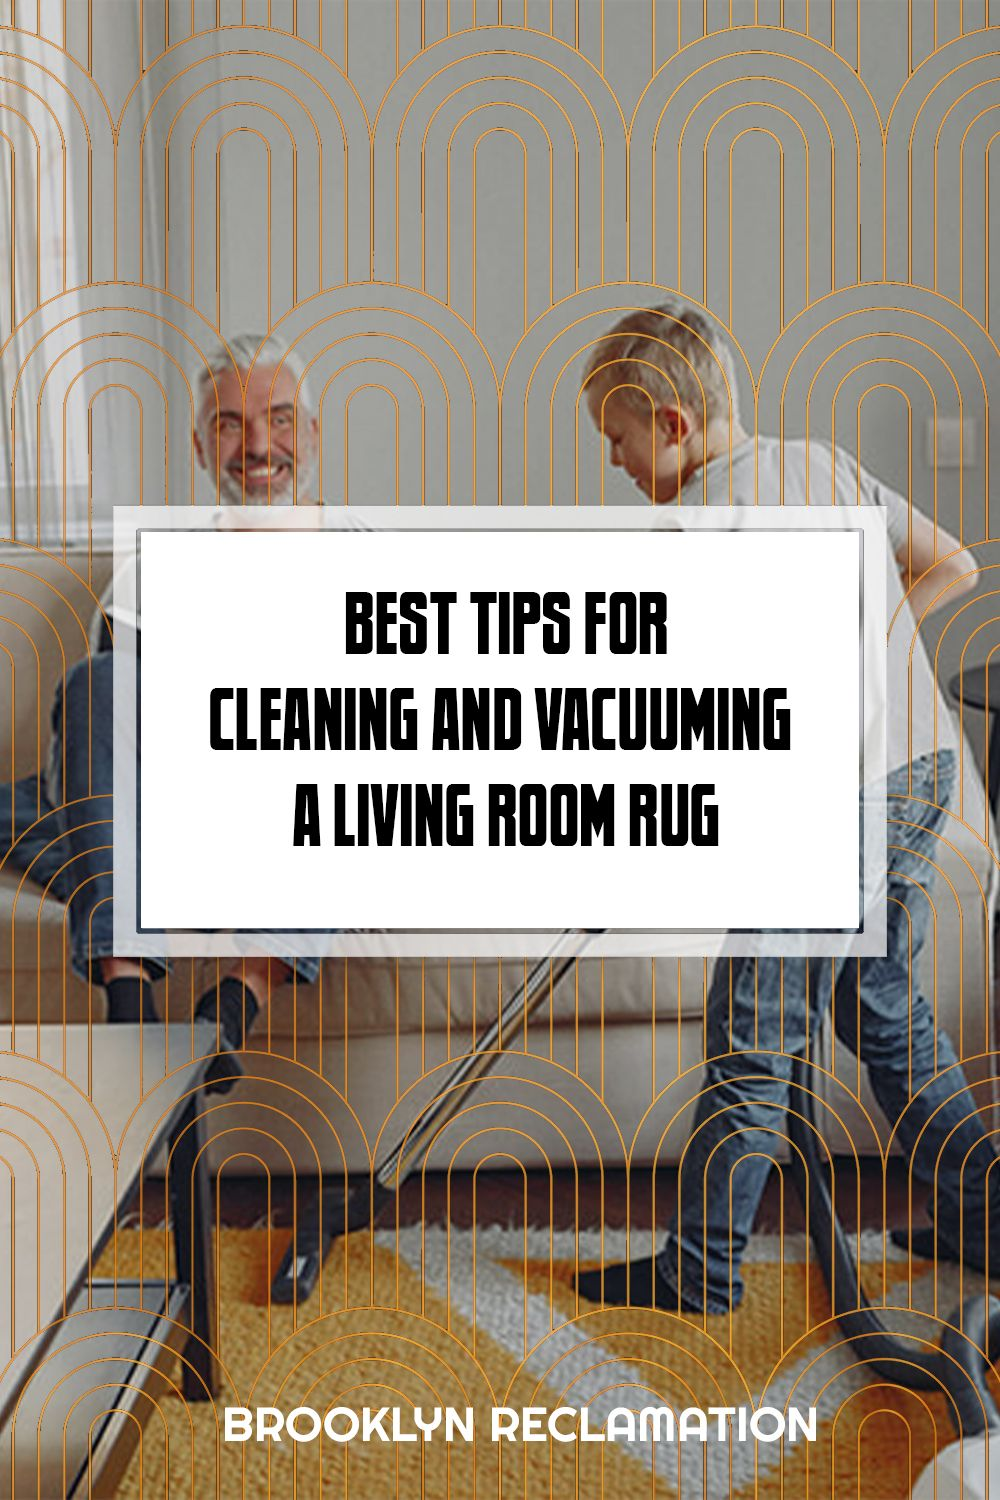 Best Tips For Cleaning and Vacuuming A Living Room Rug. We all love the look the area rug adds to our living room. Everything is cozy and warm, and you put in too much work to ensure it blends nicely with the rest of the room. But to keep the rug looking fresh and clean all the time, you need to give it a deep cleaning occasionally.   #arearug #livingroomrugs #arearuglivingroom #rug #arearugplacement #arearugcleaning